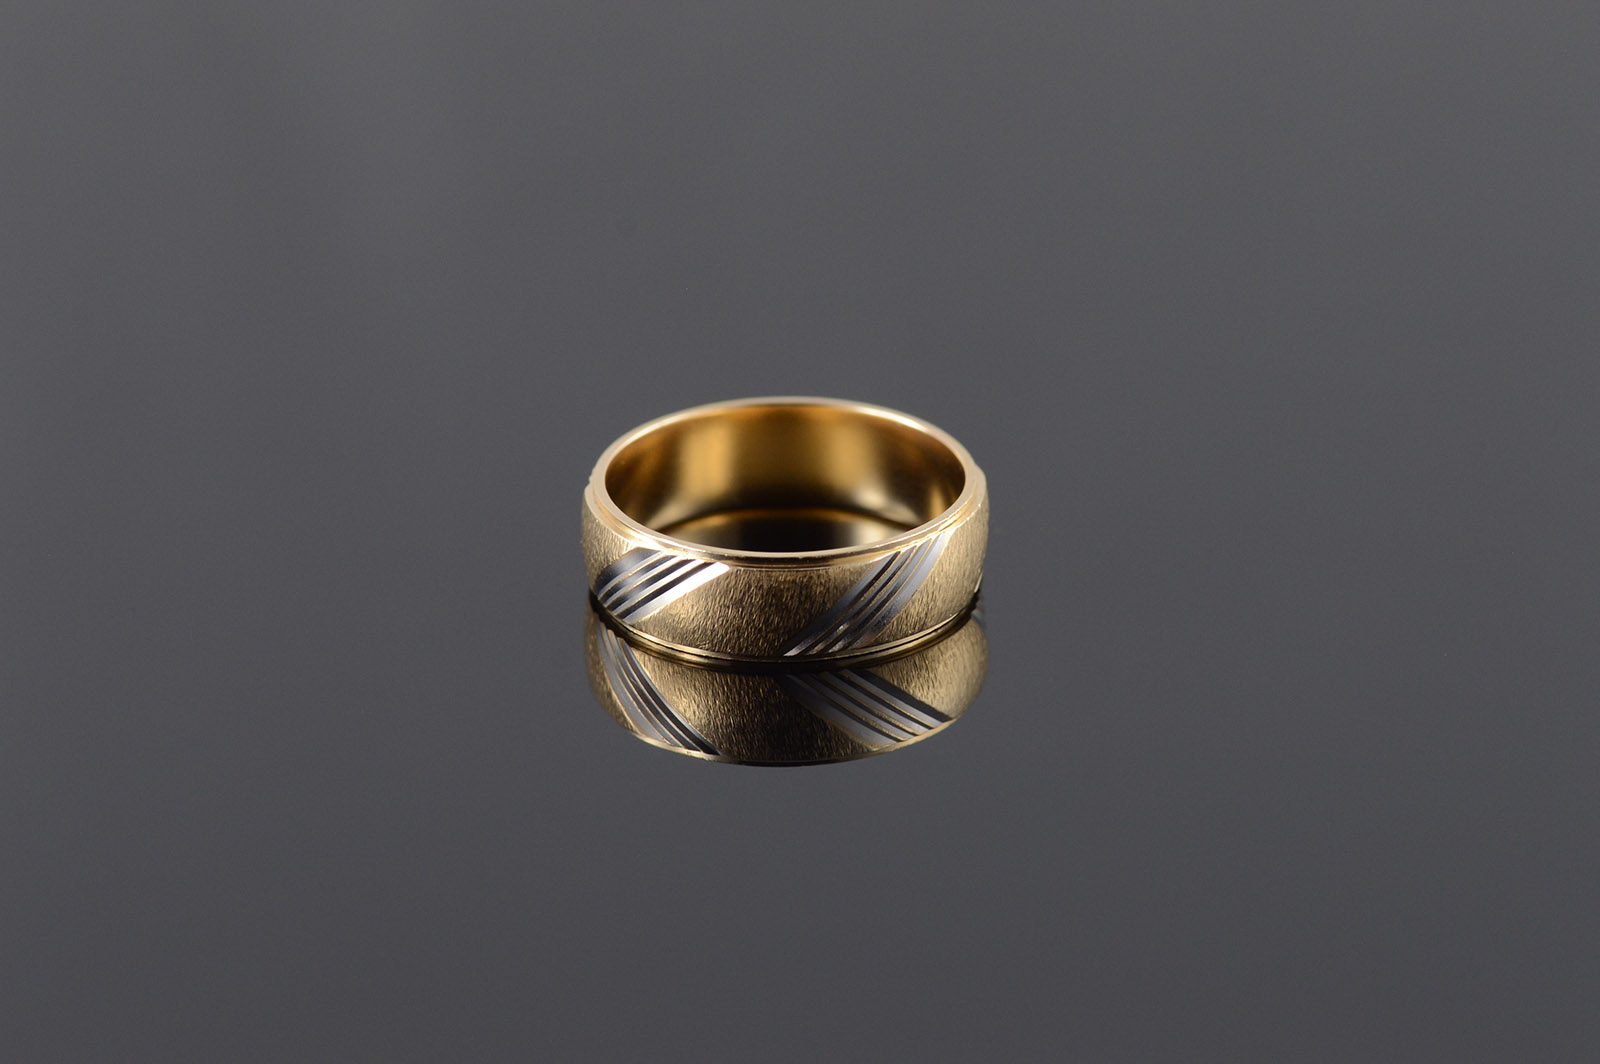 Image 1 Of 4 Starts Cost 14k 6mm Twist Two Tone: Twisted Two Tone Wedding Bands At Websimilar.org